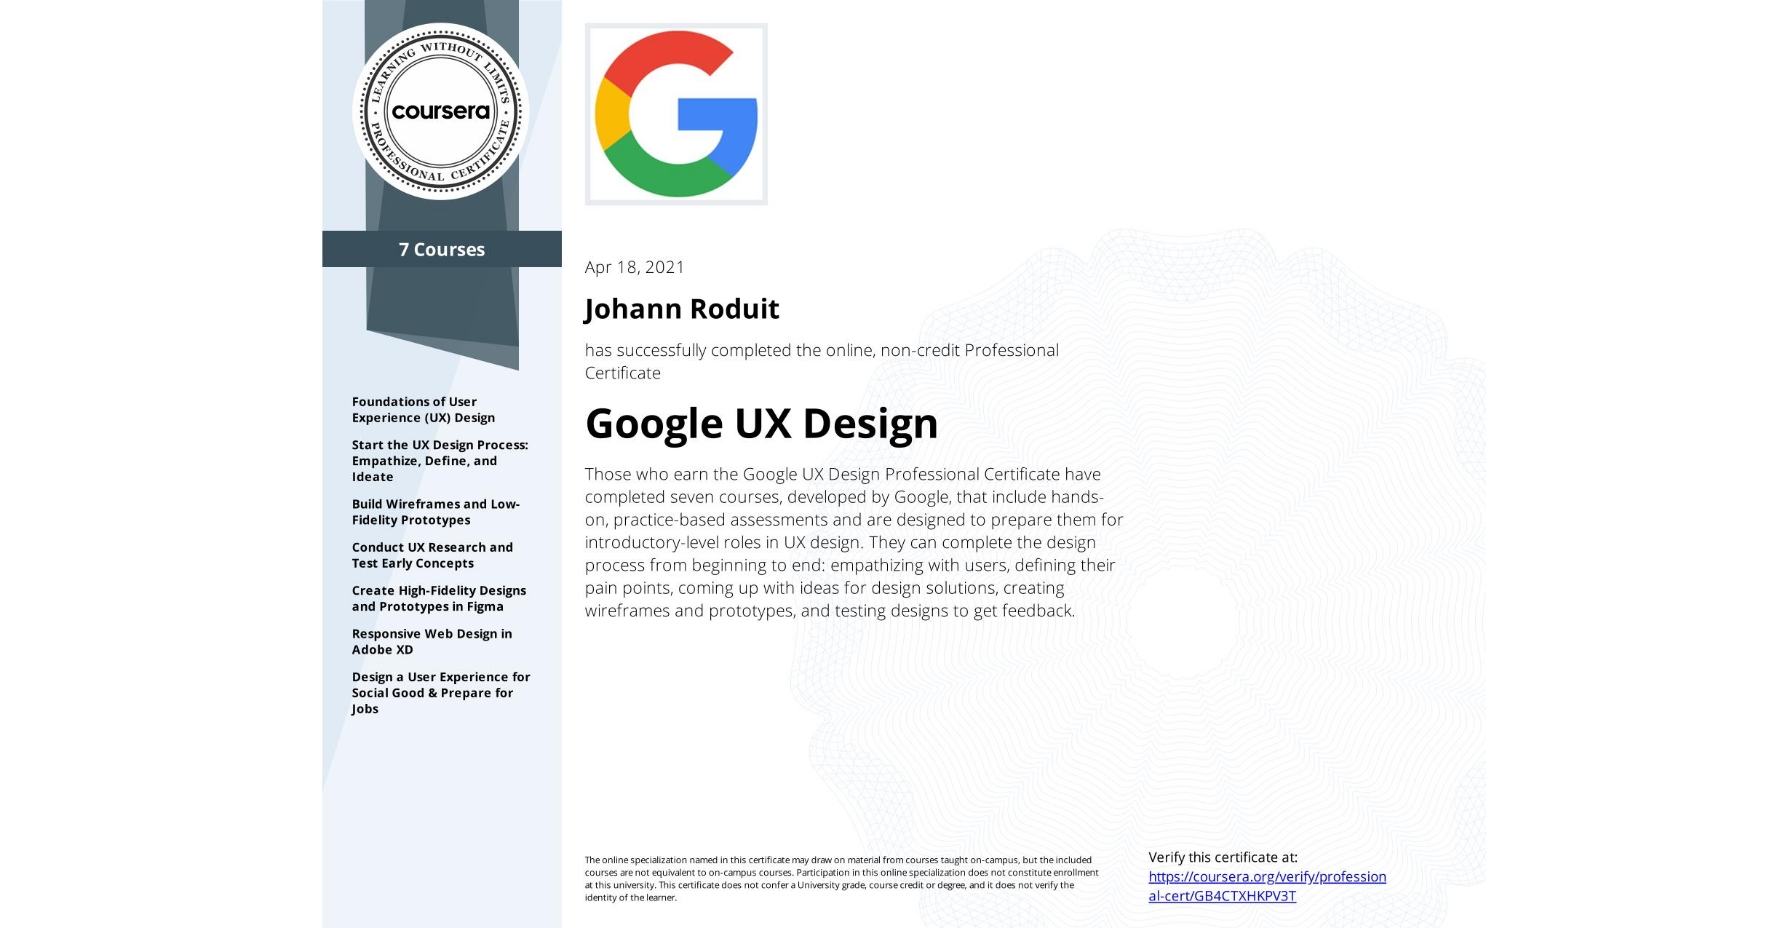 View certificate for Johann Roduit, Google UX Design, offered through Coursera. Those who earn the Google UX Design Professional Certificate have completed seven courses, developed by Google, that include hands-on, practice-based assessments and are designed to prepare them for introductory-level roles in UX design. They can complete the design process from beginning to end: empathizing with users, defining their pain points, coming up with ideas for design solutions, creating wireframes and prototypes, and testing designs to get feedback.